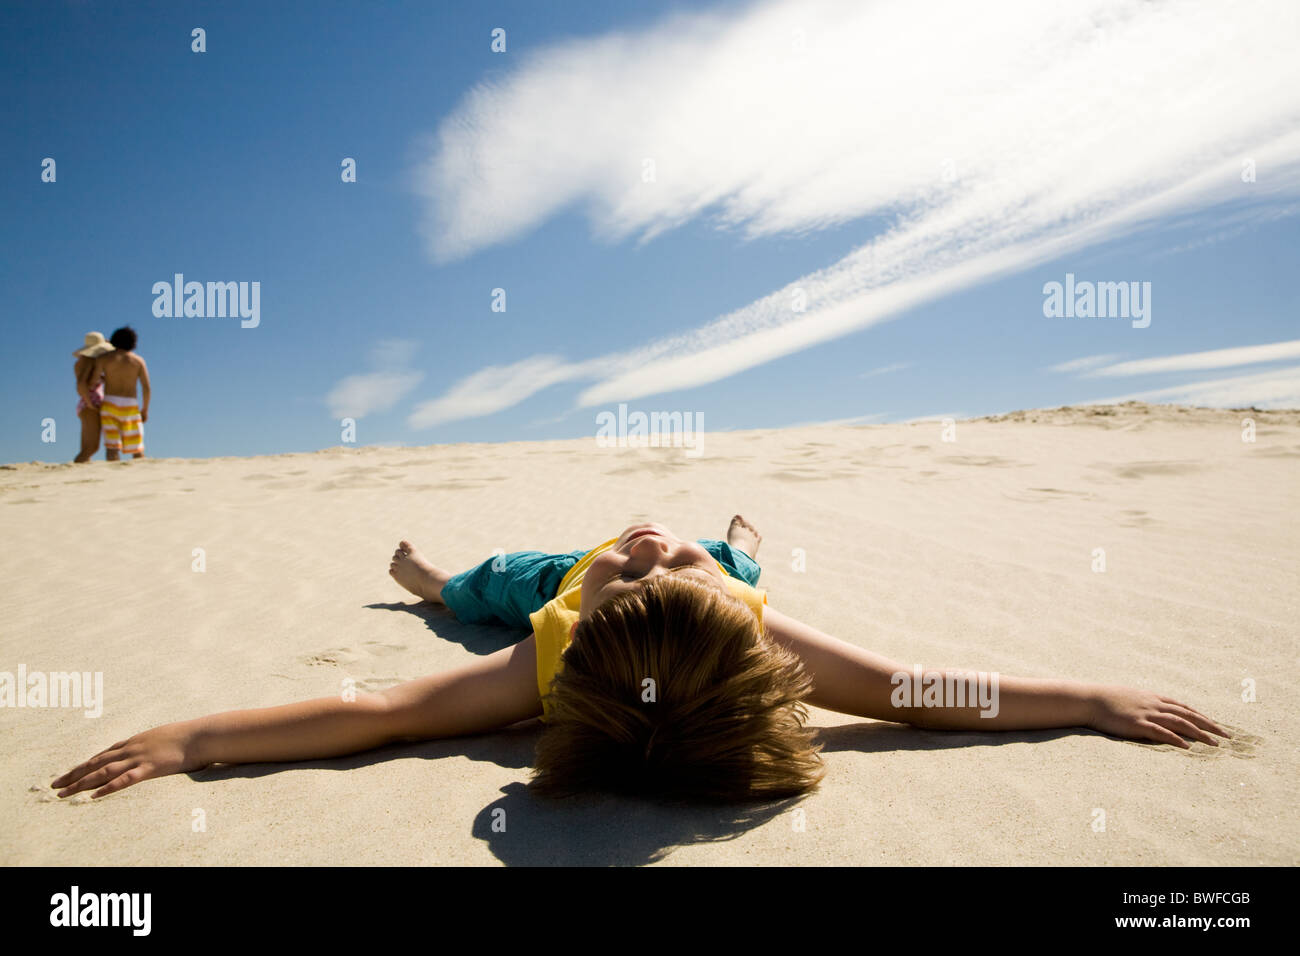 Image of restful boy lying on sand under blue sky and enjoying sunny day - Stock Image